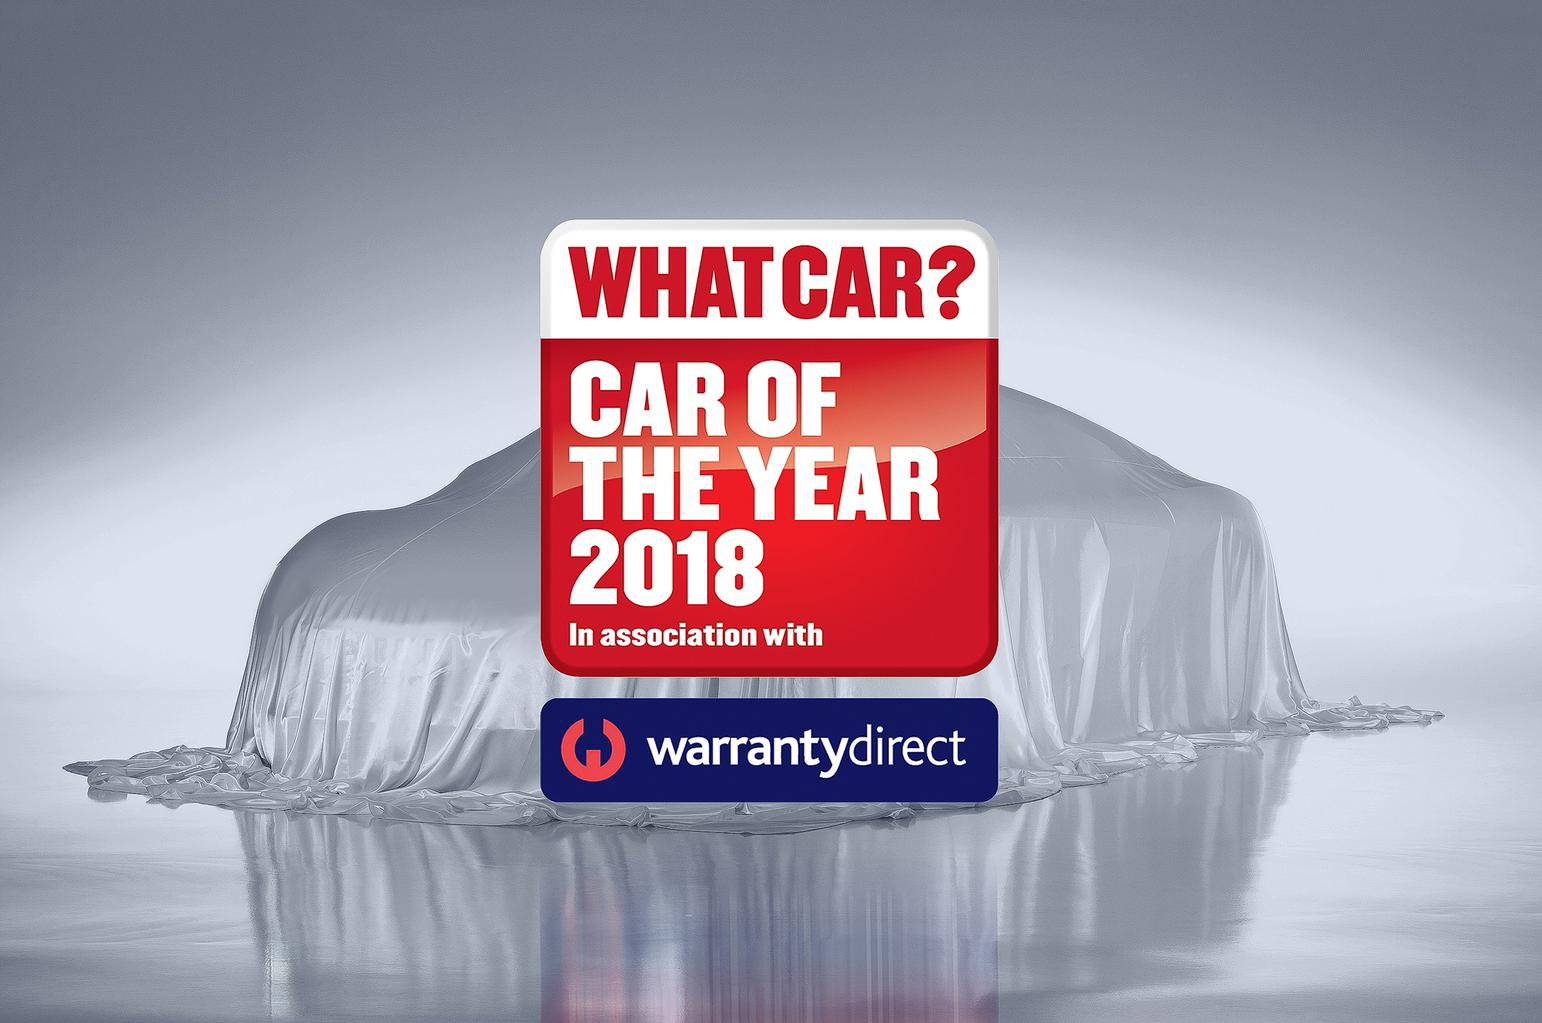 What Car? Car of the Year contenders